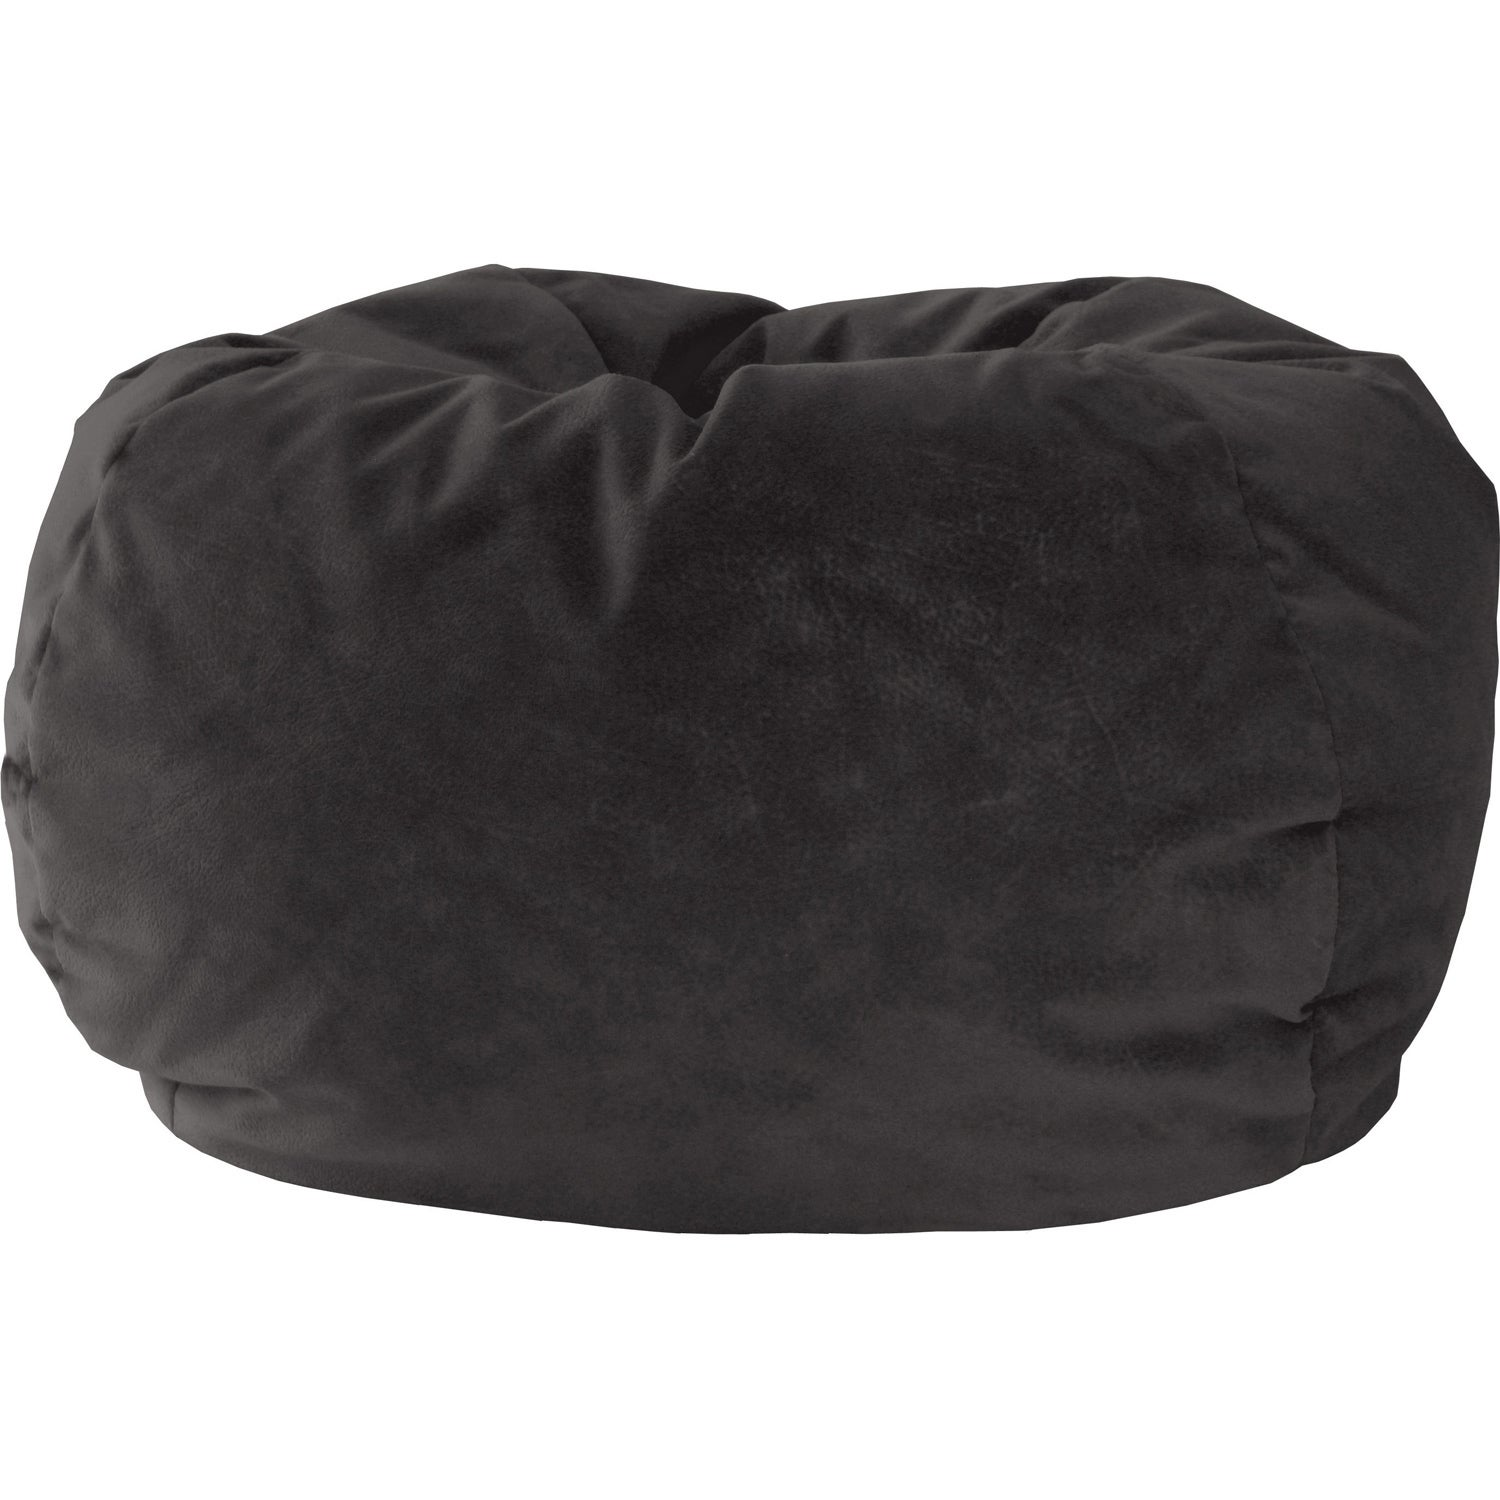 Kids Suede Bean Bag Chair Removable Cover With Childproof Zipper 84In Black New